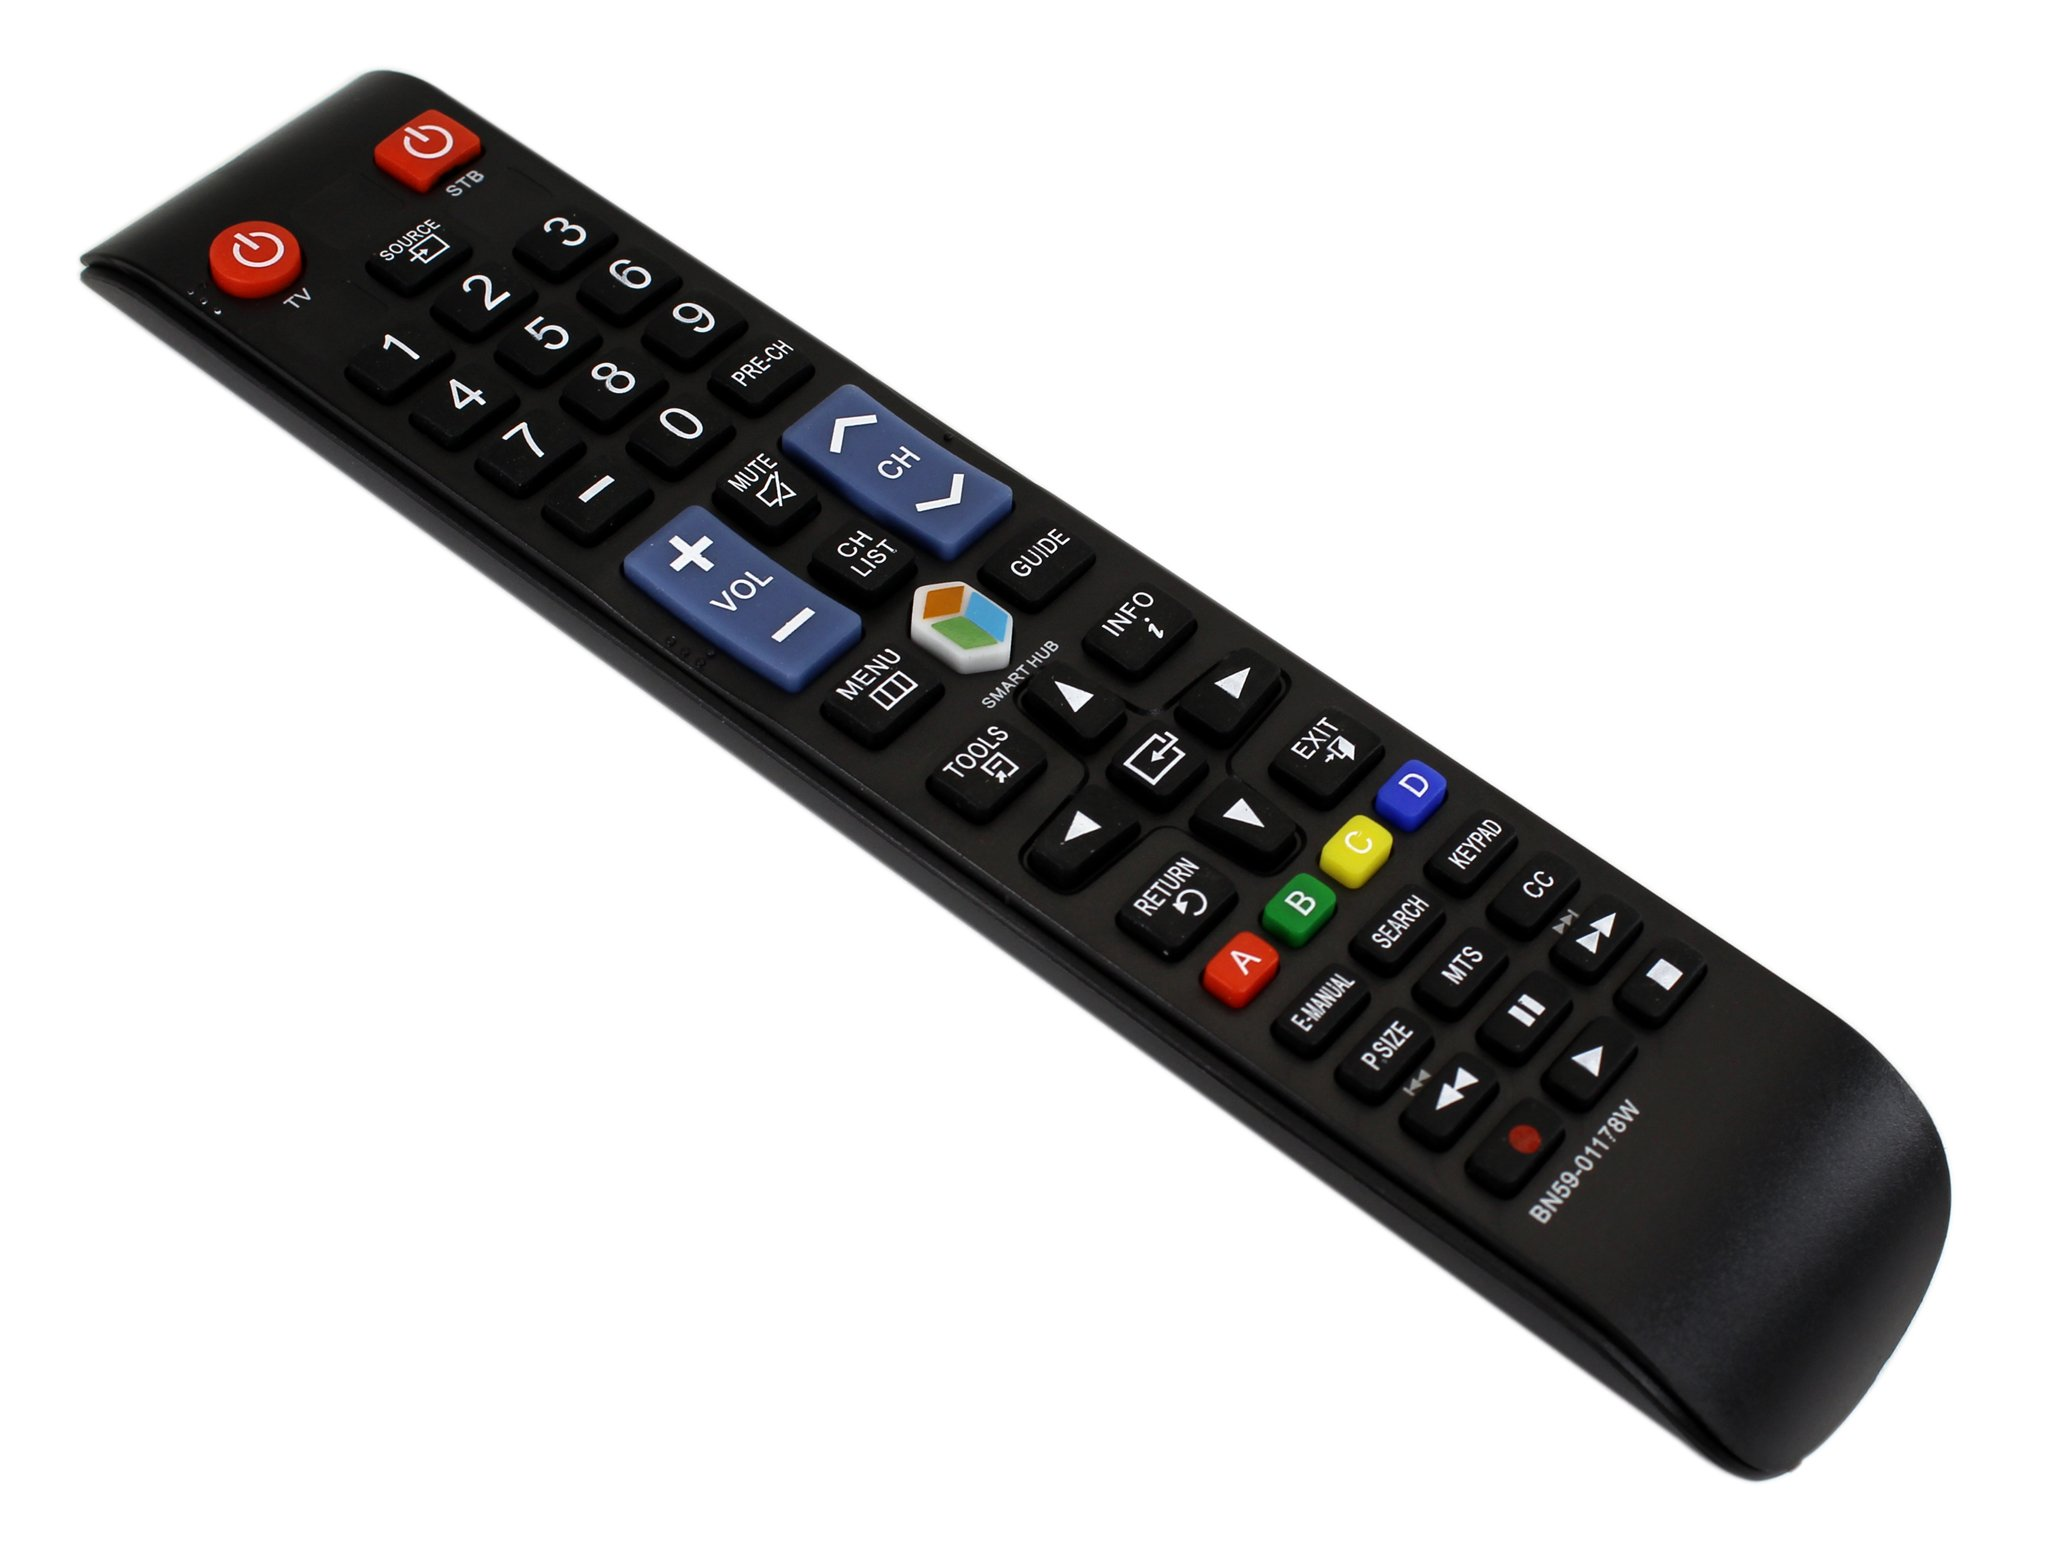 RMTECH BN59-01178W Universal Remote Control Replacement for Samsung LED LCD Smart TV